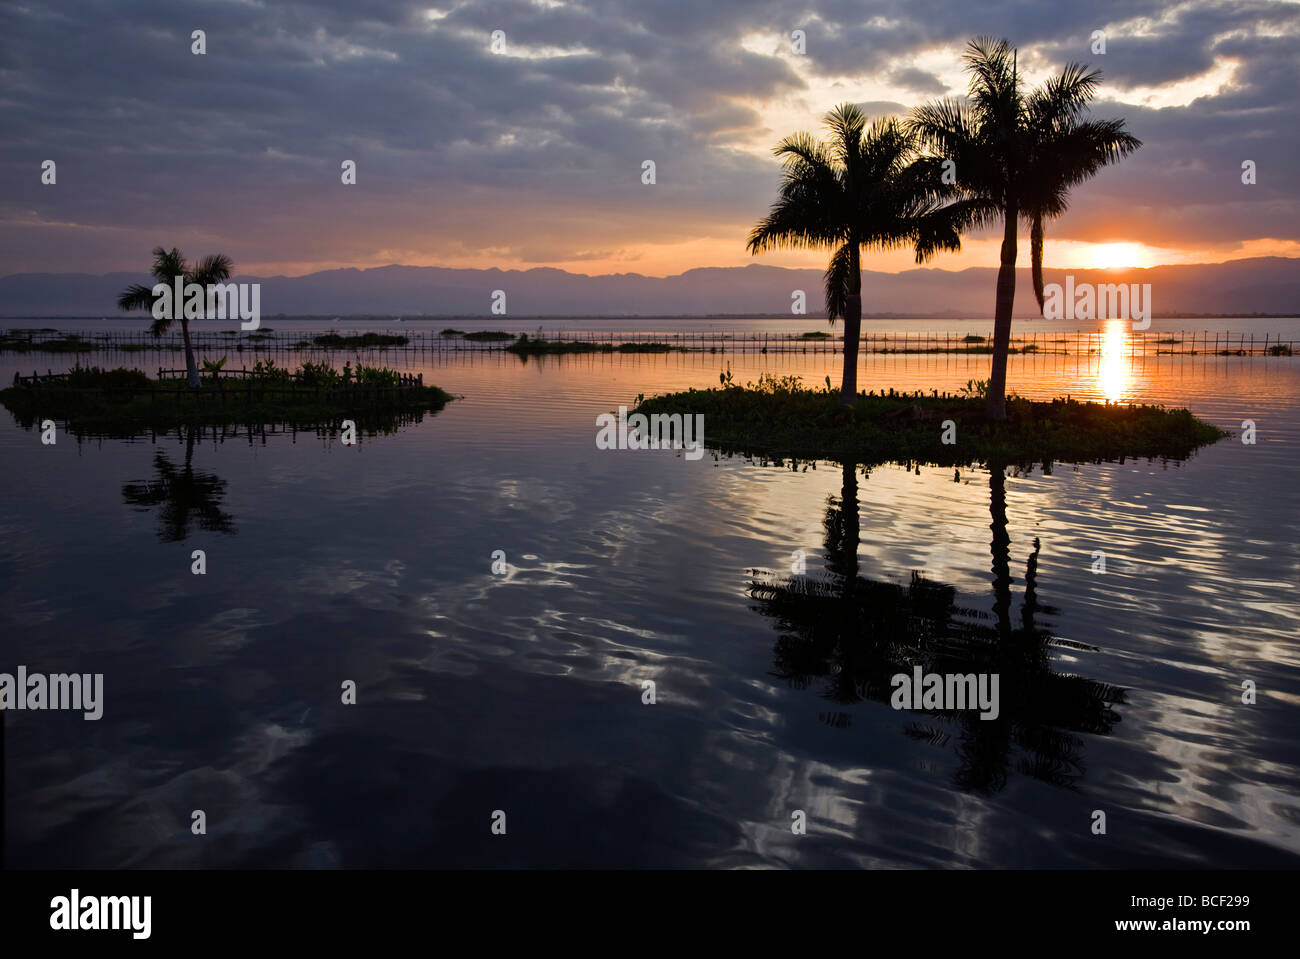 Myanmar, Burma, Lake Inle. Sunset over Lake Inle which is picturesquely sheltered by mountains rising to 1,524 metres. - Stock Image